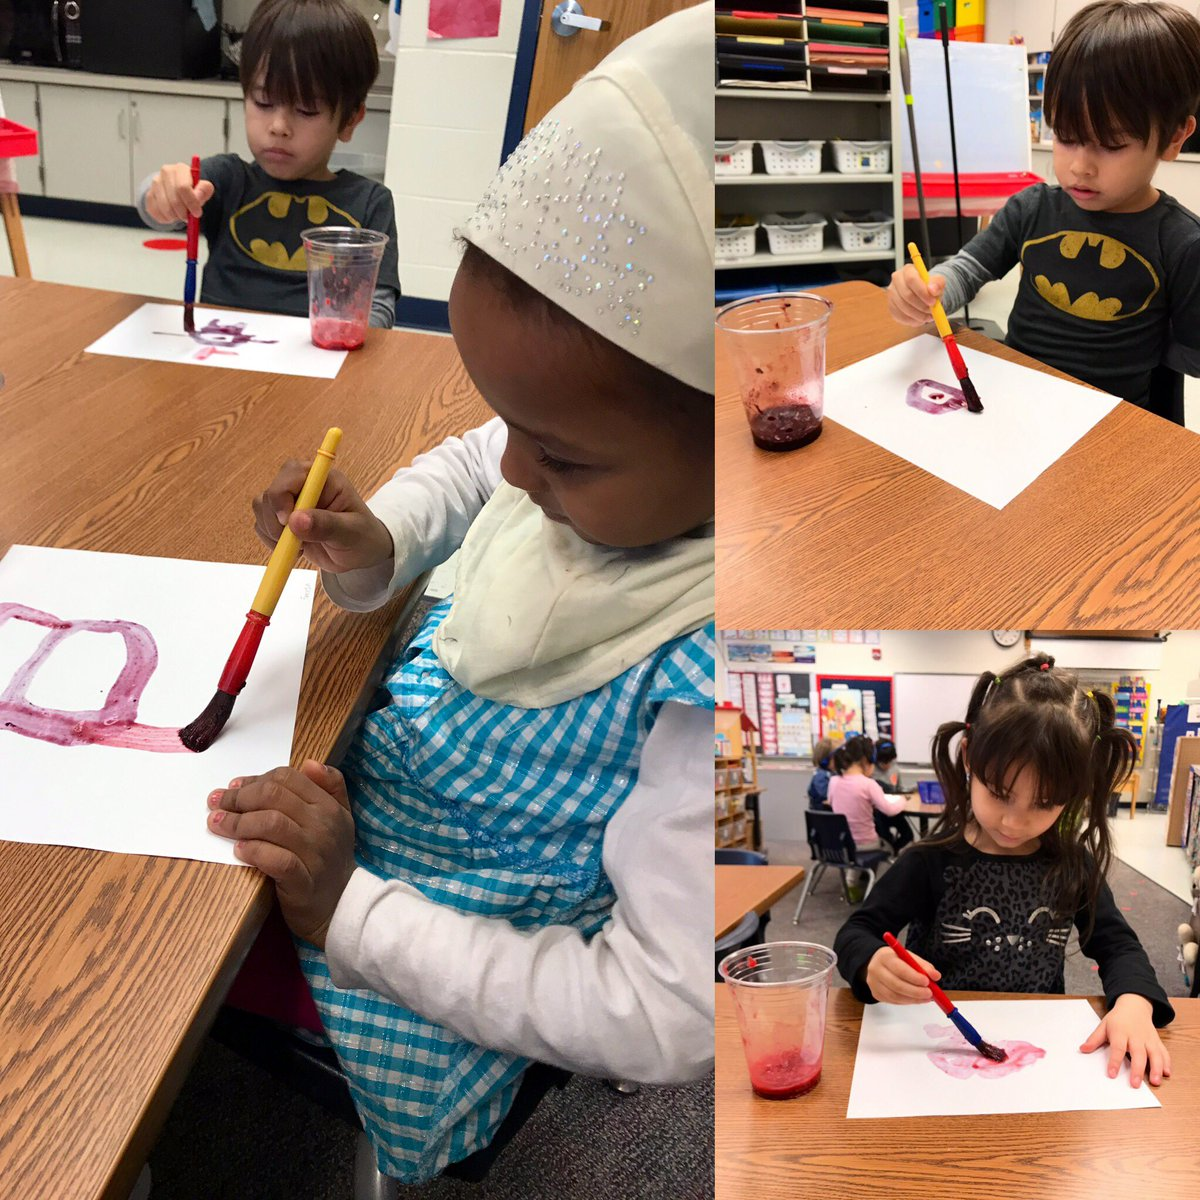 """Painting using crushed strawberries, raspberries, blueberries and blackberries.  Inspired by the book """"The Lion and the Little Red Bird""""🍓 <a target='_blank' href='http://search.twitter.com/search?q=HFBTweets'><a target='_blank' href='https://twitter.com/hashtag/HFBTweets?src=hash'>#HFBTweets</a></a> <a target='_blank' href='https://t.co/9SjA2k0W42'>https://t.co/9SjA2k0W42</a>"""